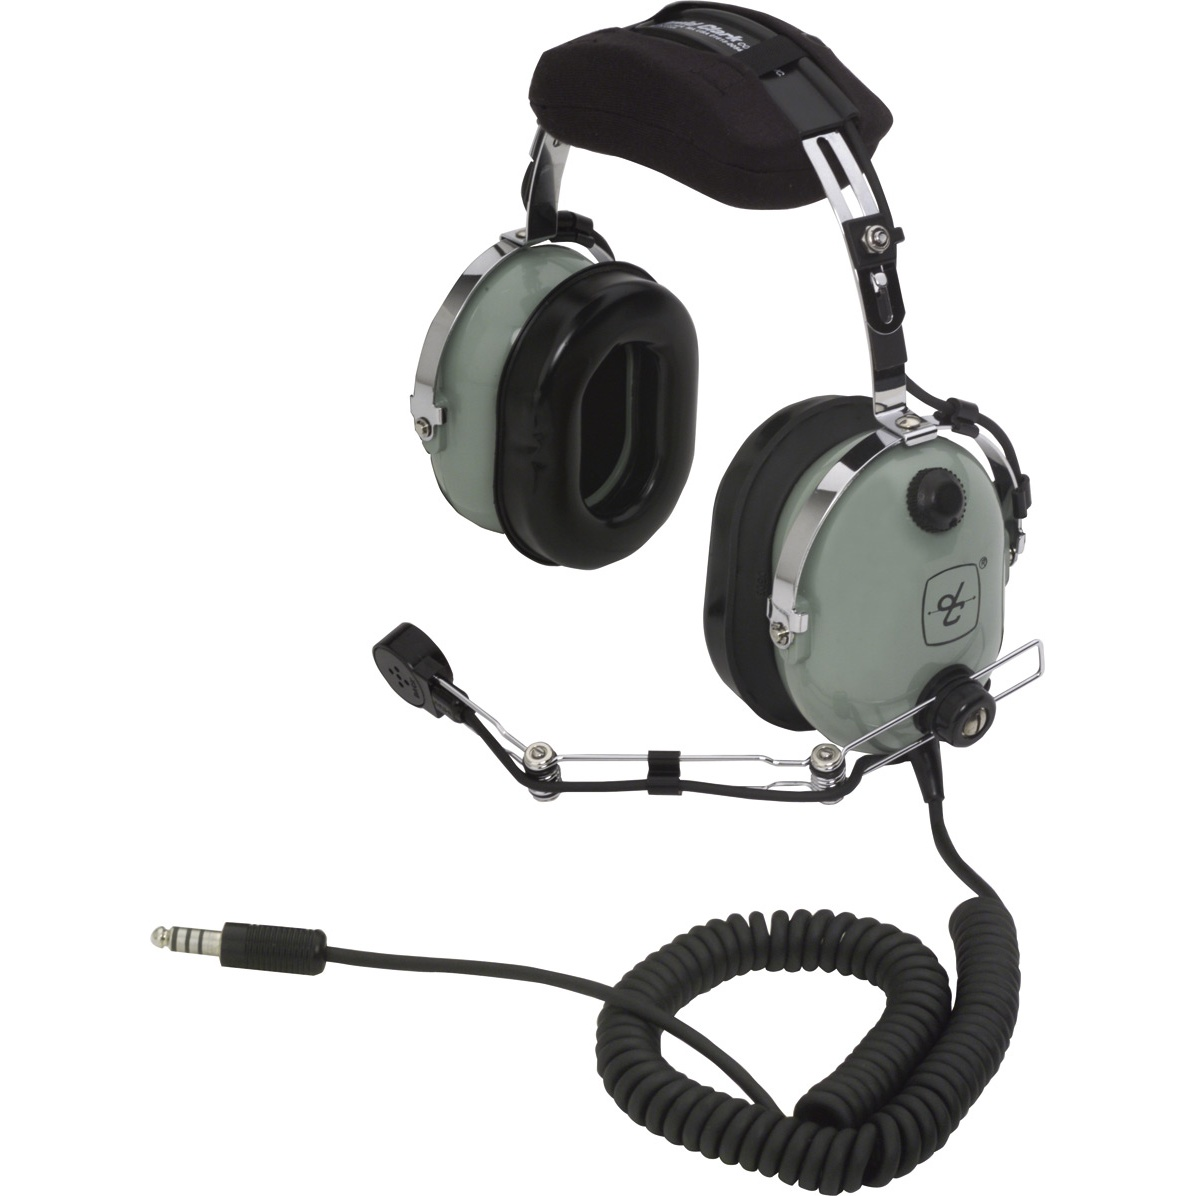 f5ccc517ce4 David Clark H10-56 Passive Helicopter Pilot Headset with Free ...